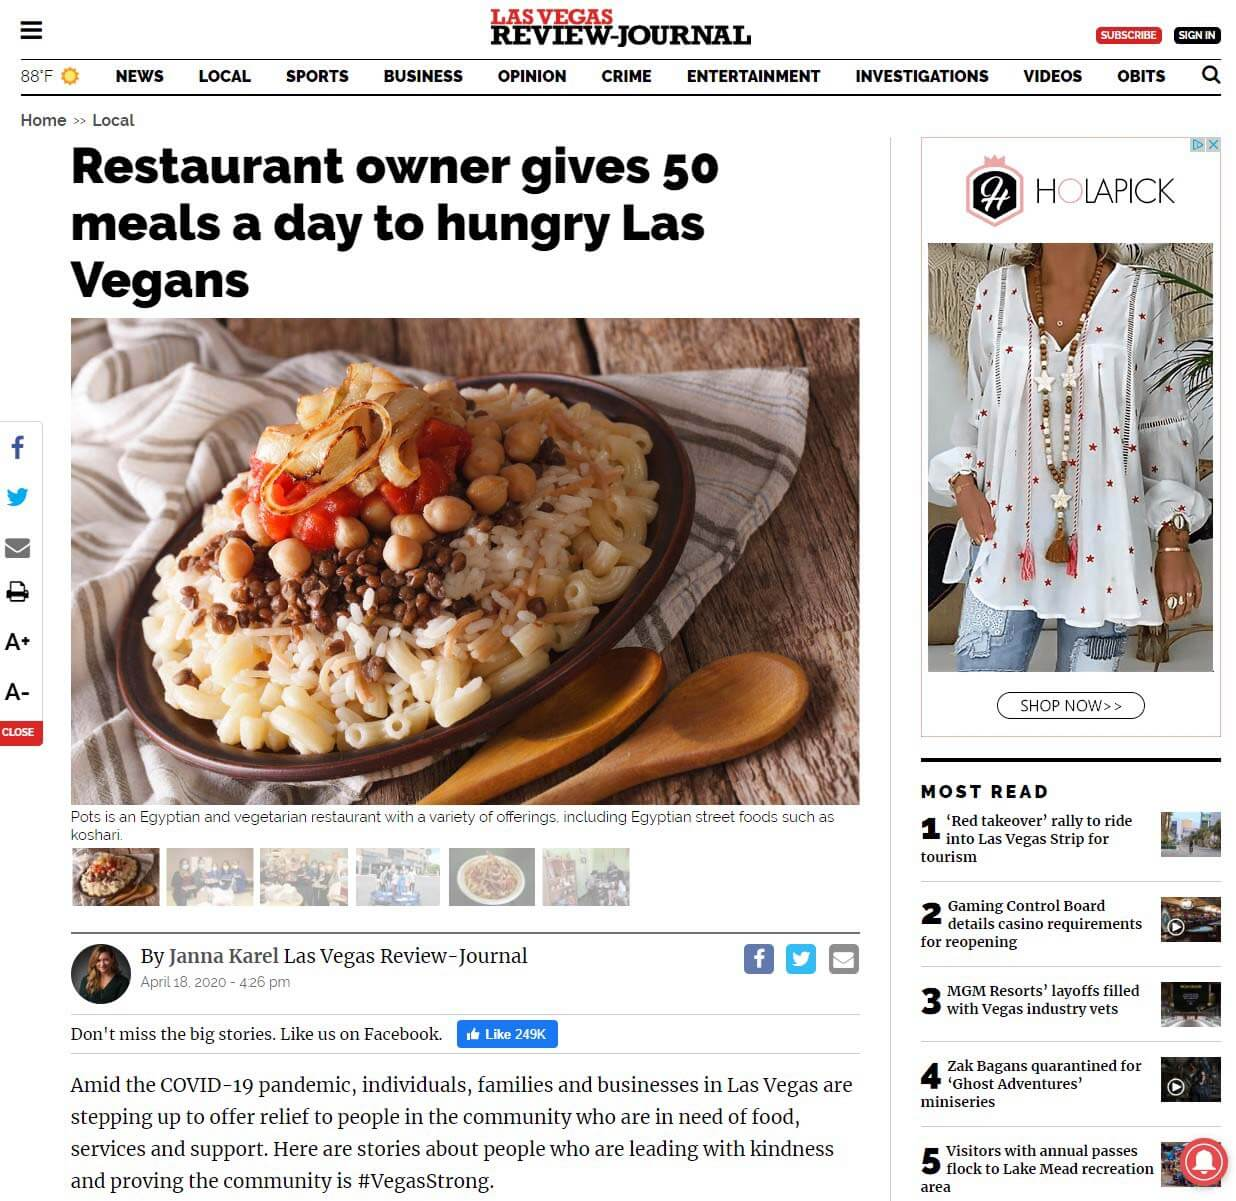 Las Vegas Review Journal Article - Restaurant owner gives 50 meals a day to hungry Las Vegans